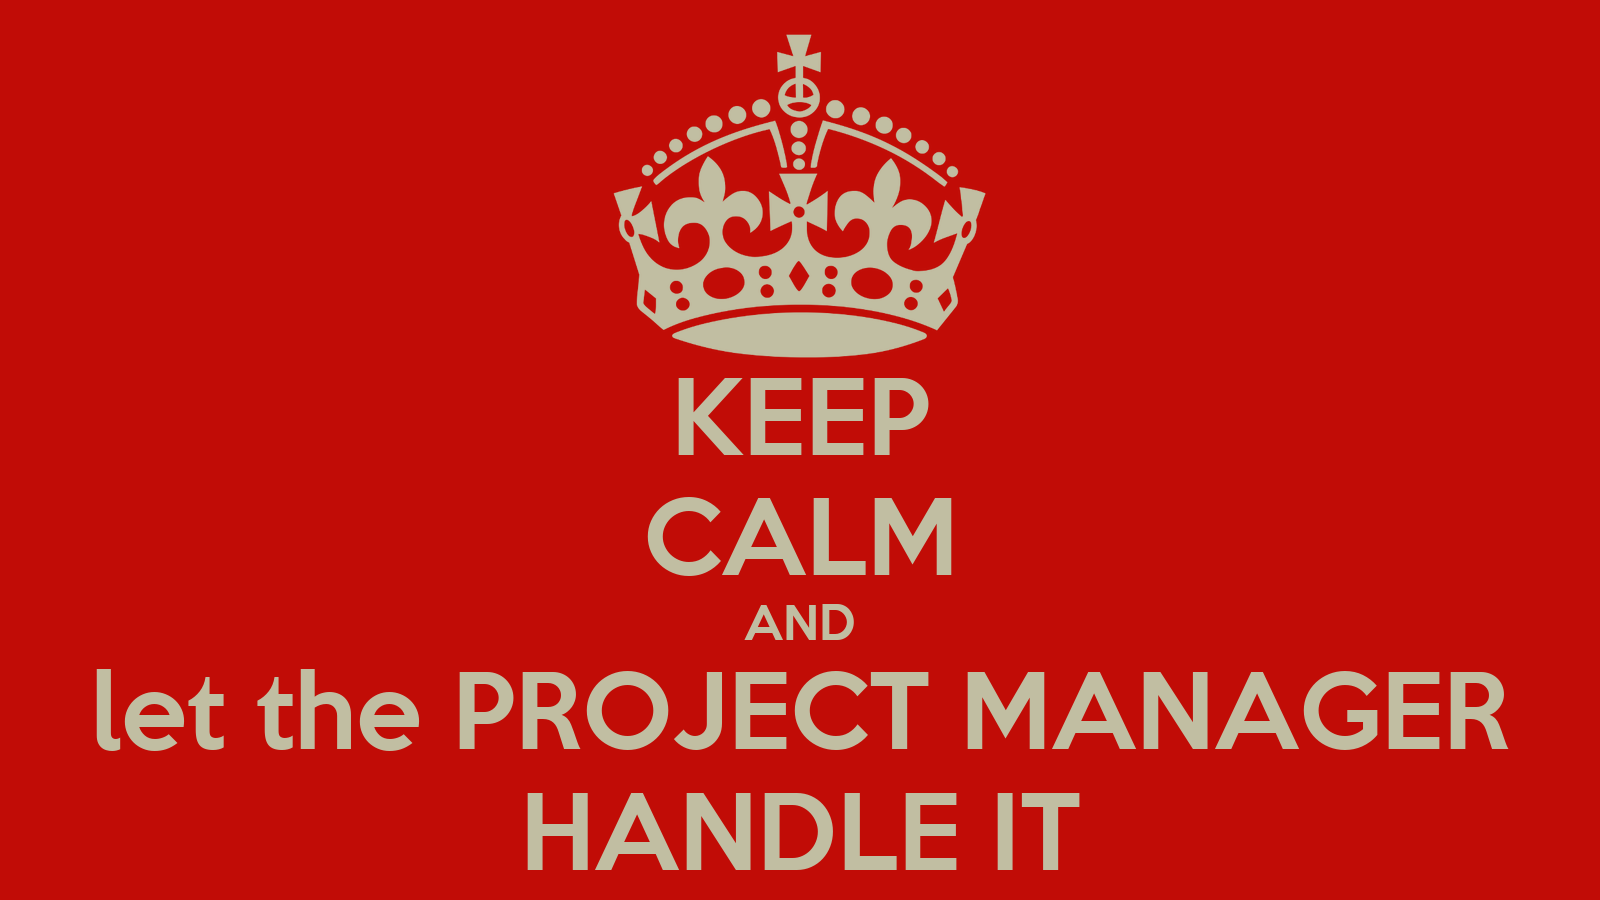 Keep calm and let the project manager handle it poster - Project management barcelona ...